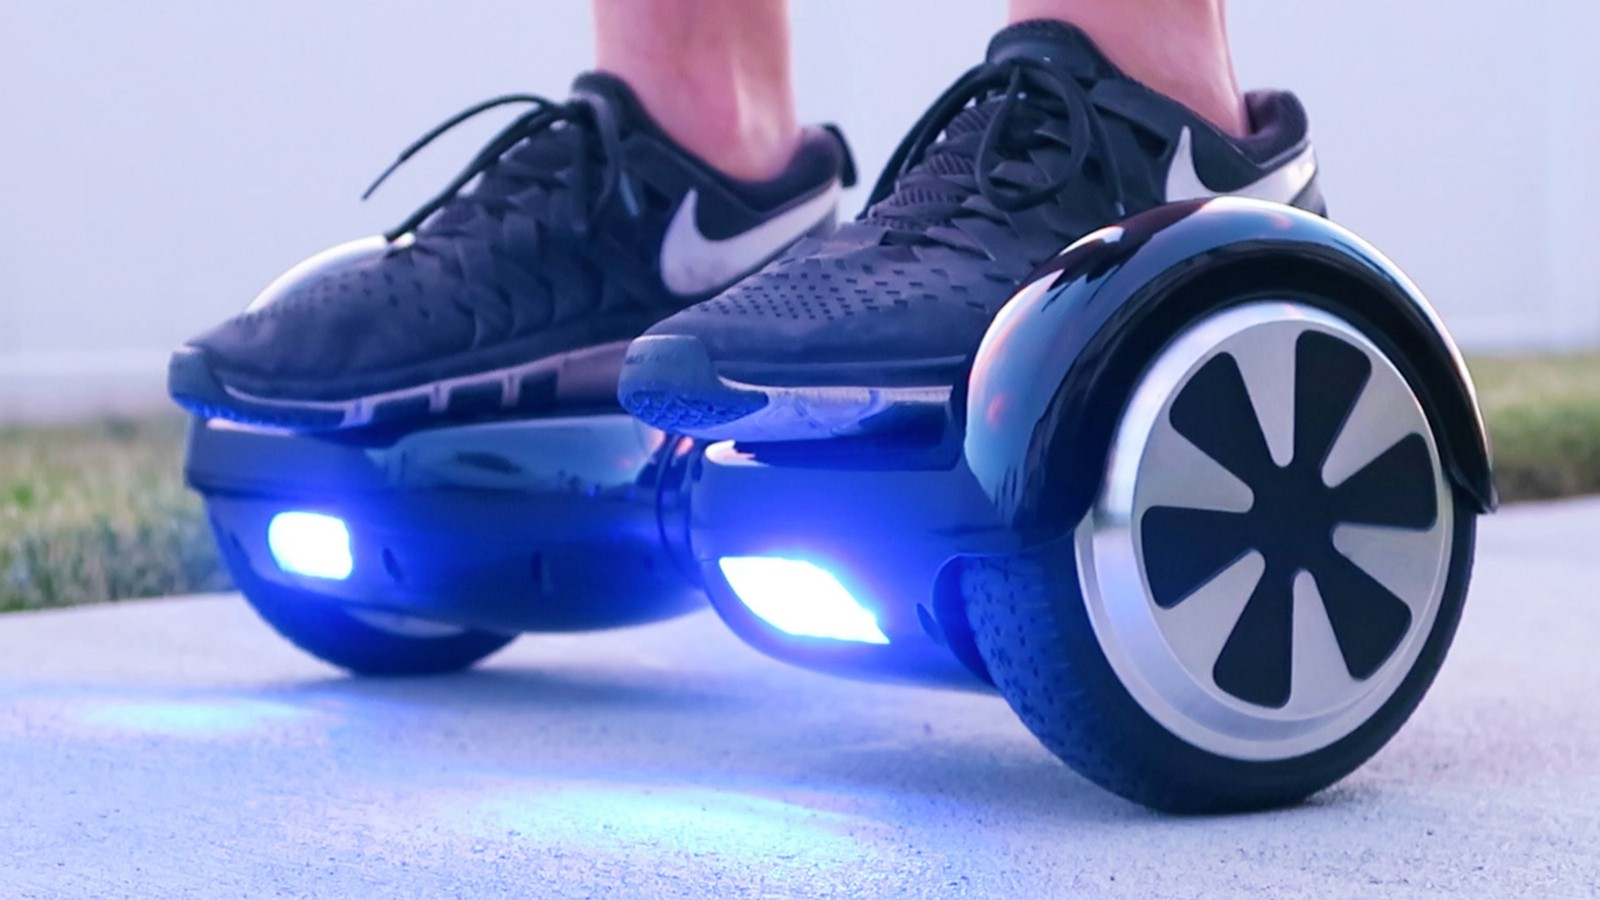 Real Working Hoverboard Internal Components And Working Of A Hoverboard Ultra Hoverboard